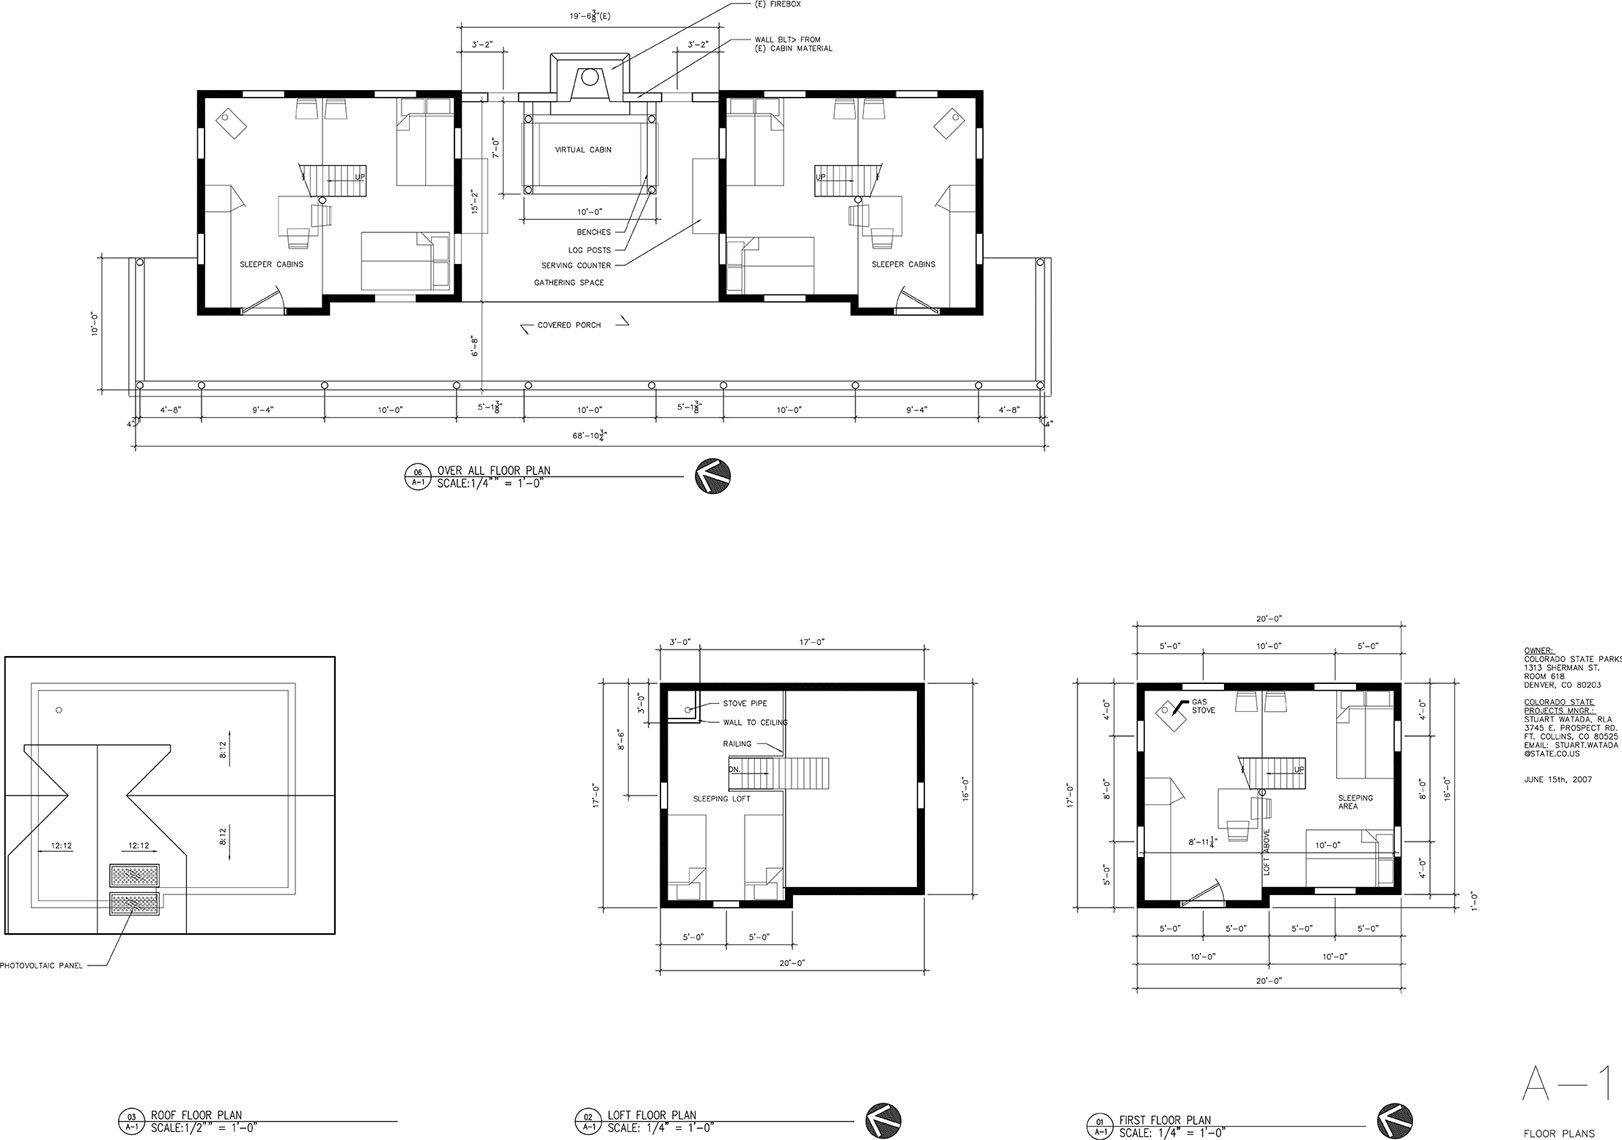 P:\2005-10-GGC\2005-10-GGC\SD\SD package\05-10_cabins_PL1 floor plans_STD-TITL_36x24 (2) (1)